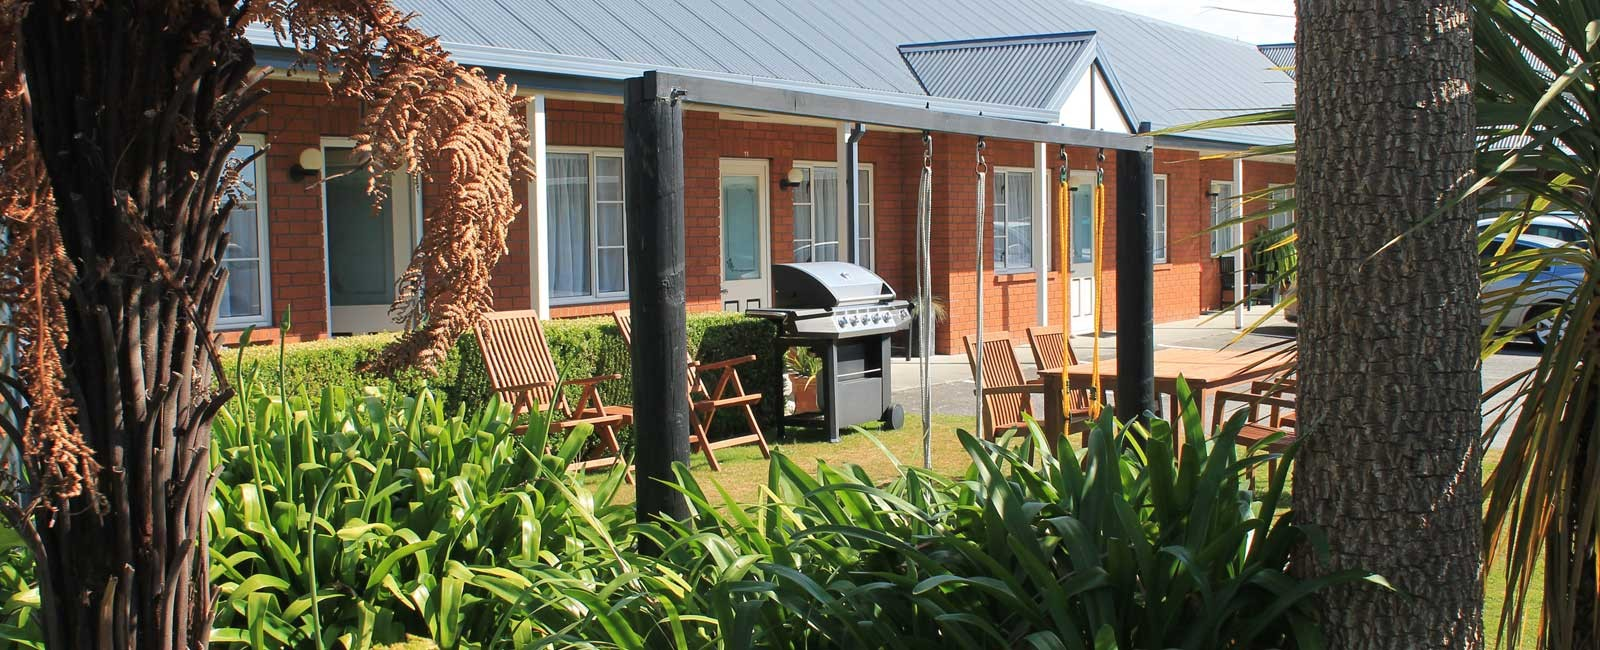 Alpine Rose Motel Motel Accommodation Greymouth New Zealand